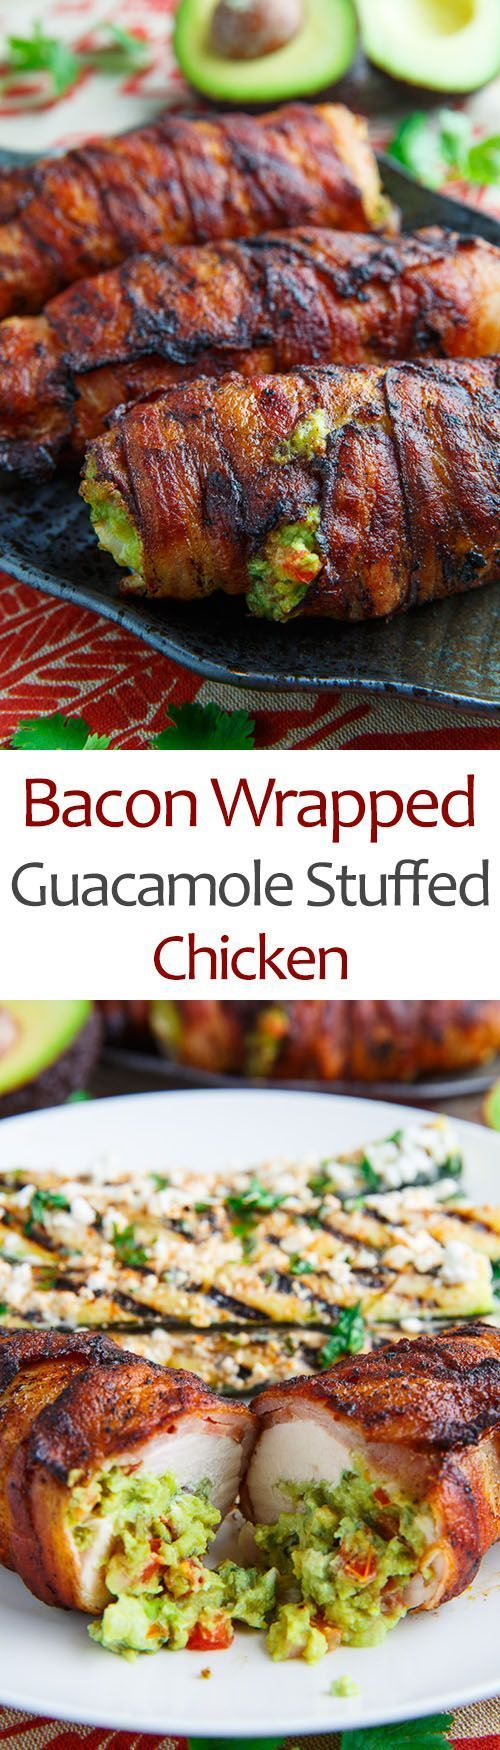 Whole30 Bacon Wrapped Guacamole Stuffed Chicken Recipe plus 25 more of the most pinned Whole30 recipes